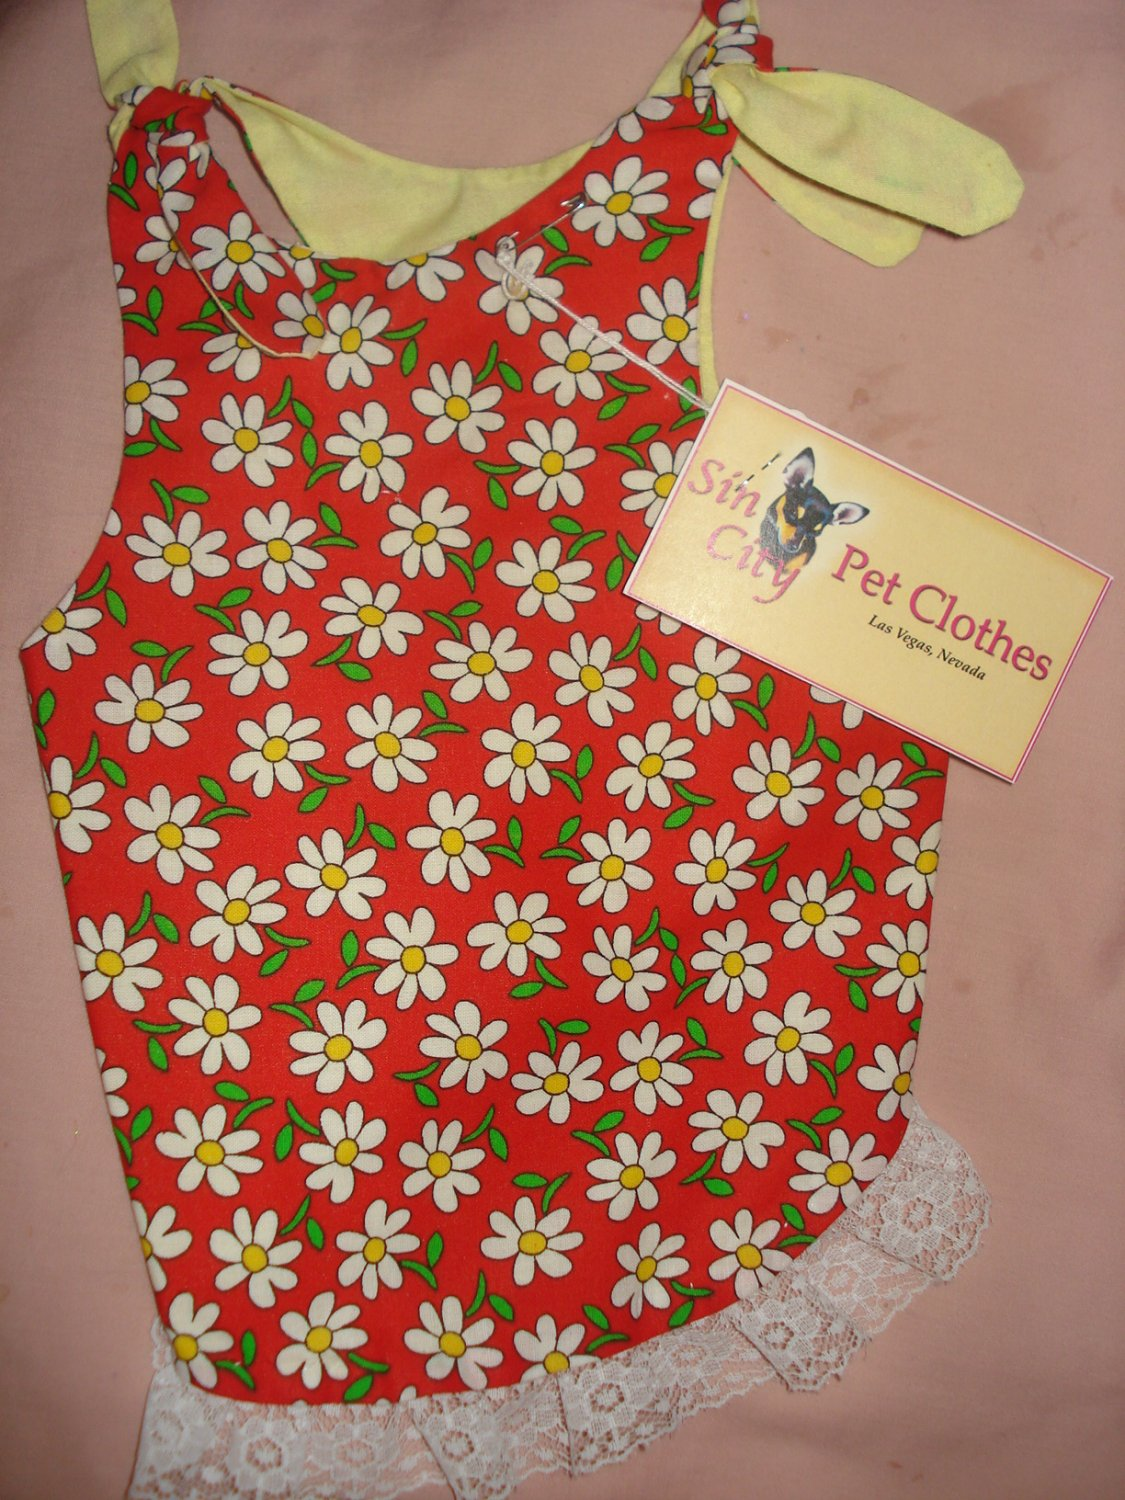 Medium REVERSABLE pet dress in red with white daisies and lace trim - dd04